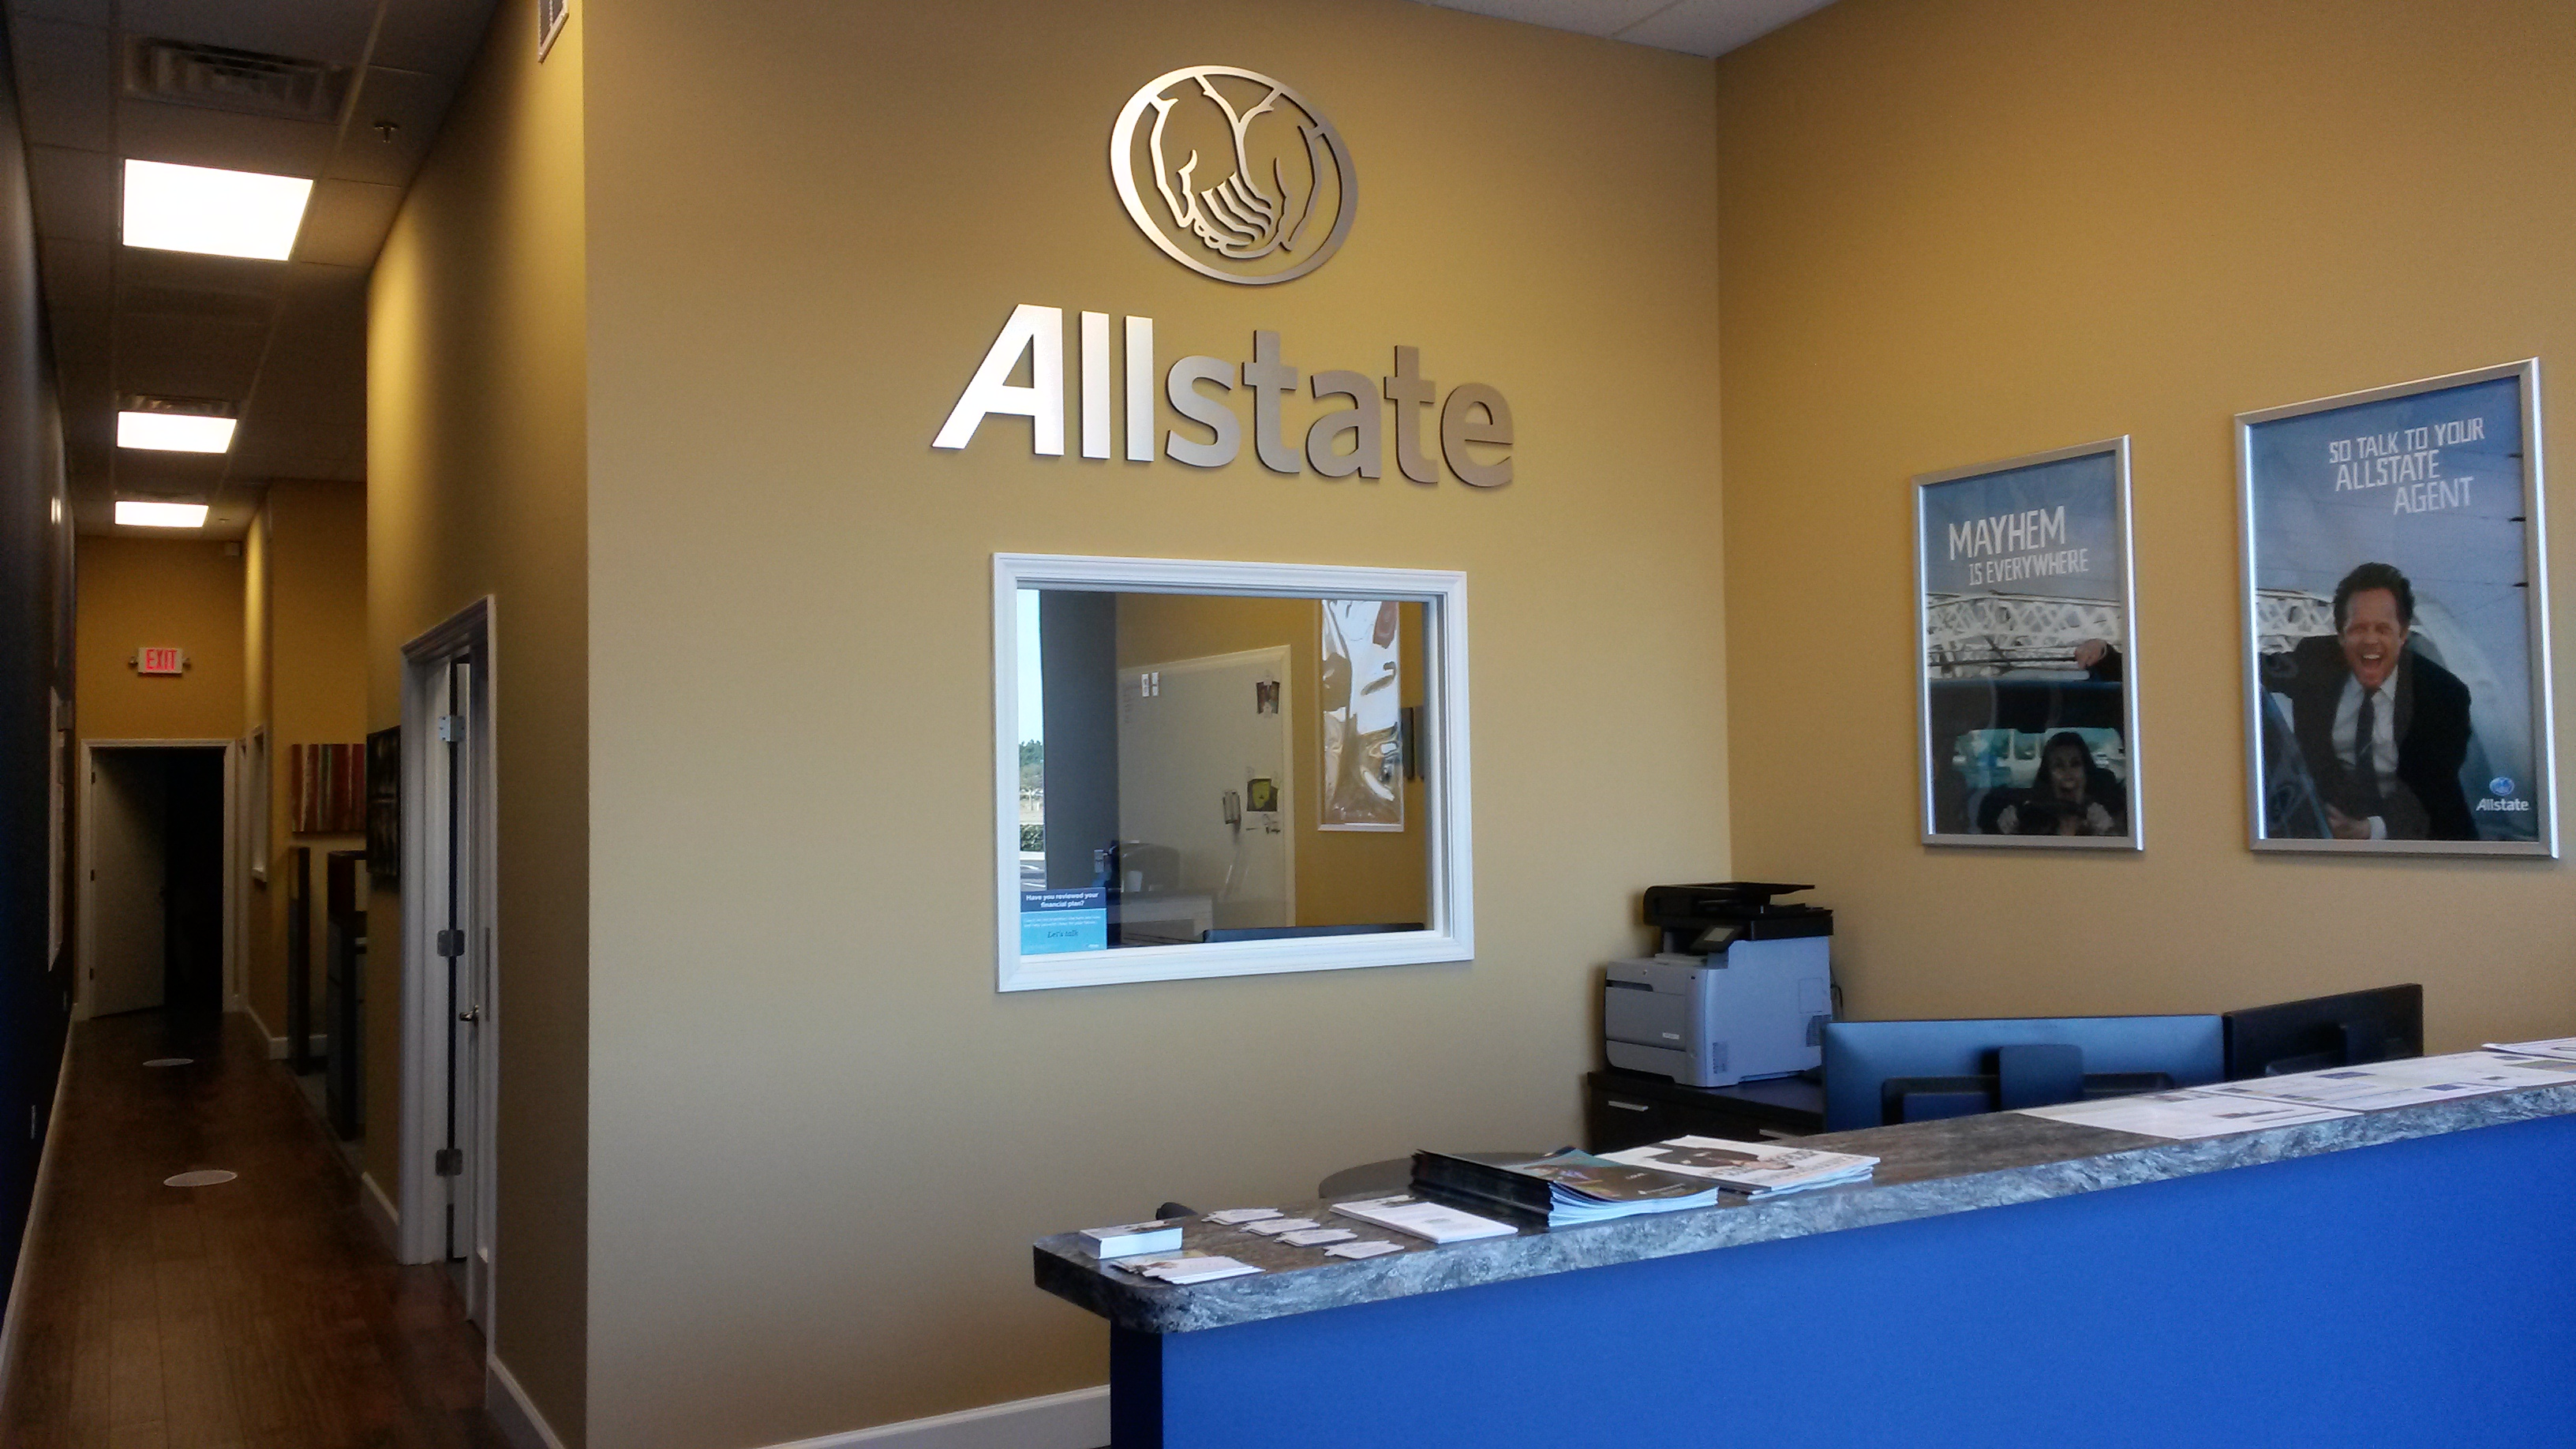 Allstate Insurance Agent: Andy Turner 9660 Argyle Forest Blvd Ste 4  Jacksonville, FL Allstate   MapQuest